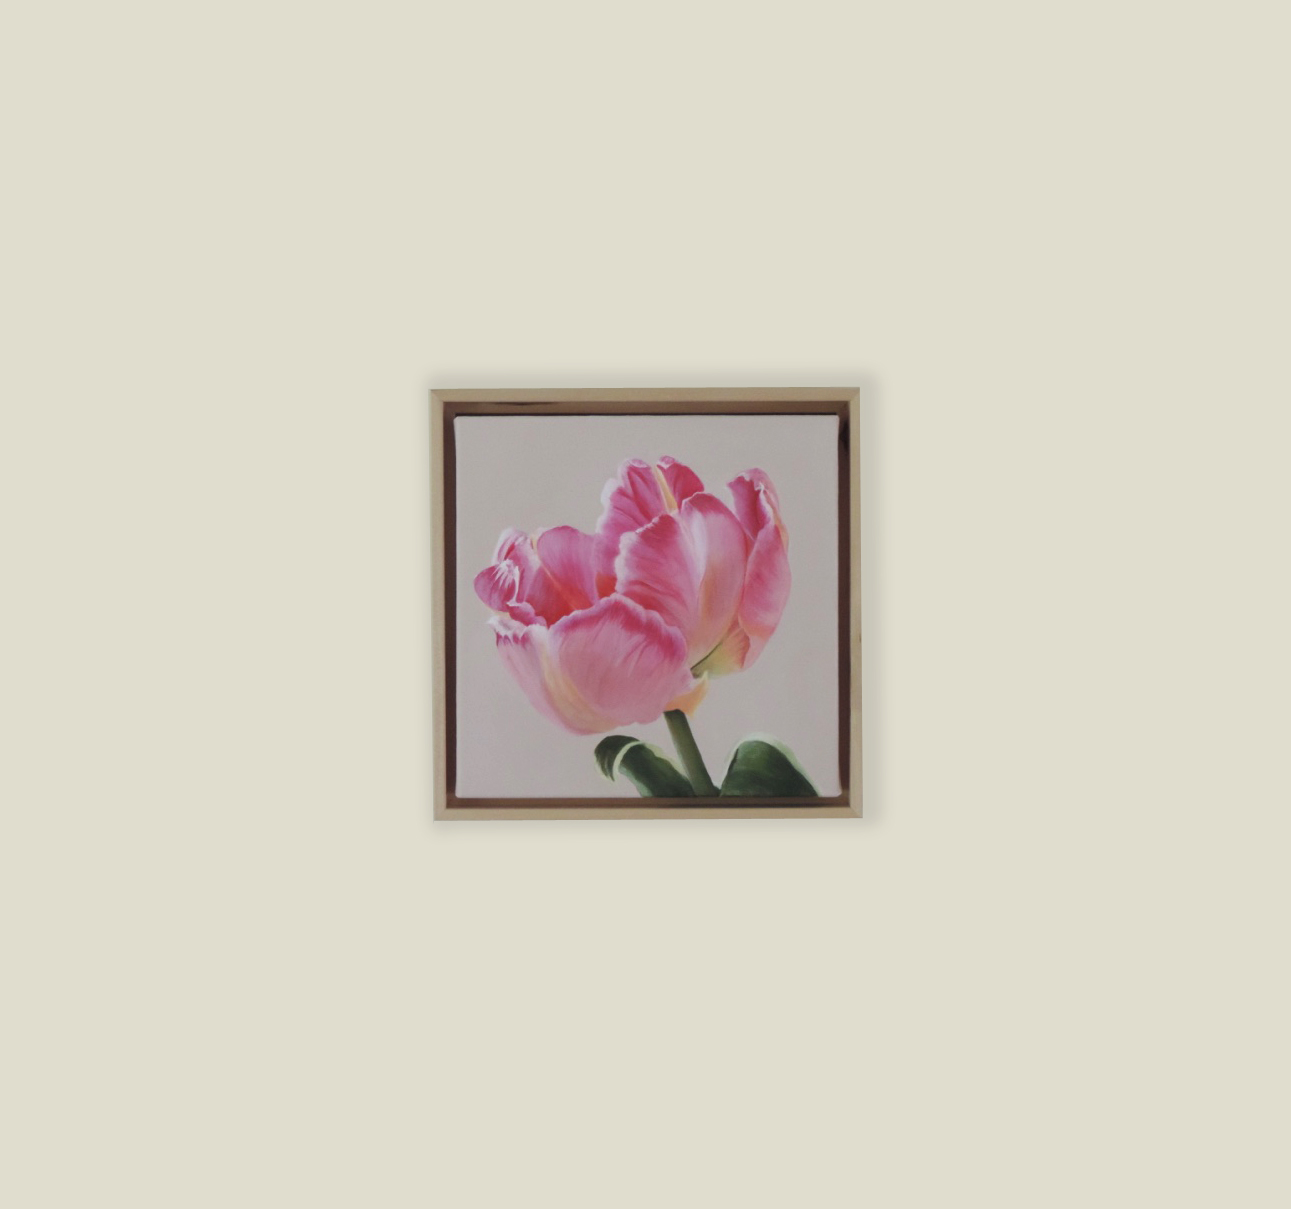 Small Pink Parrot Tulip II